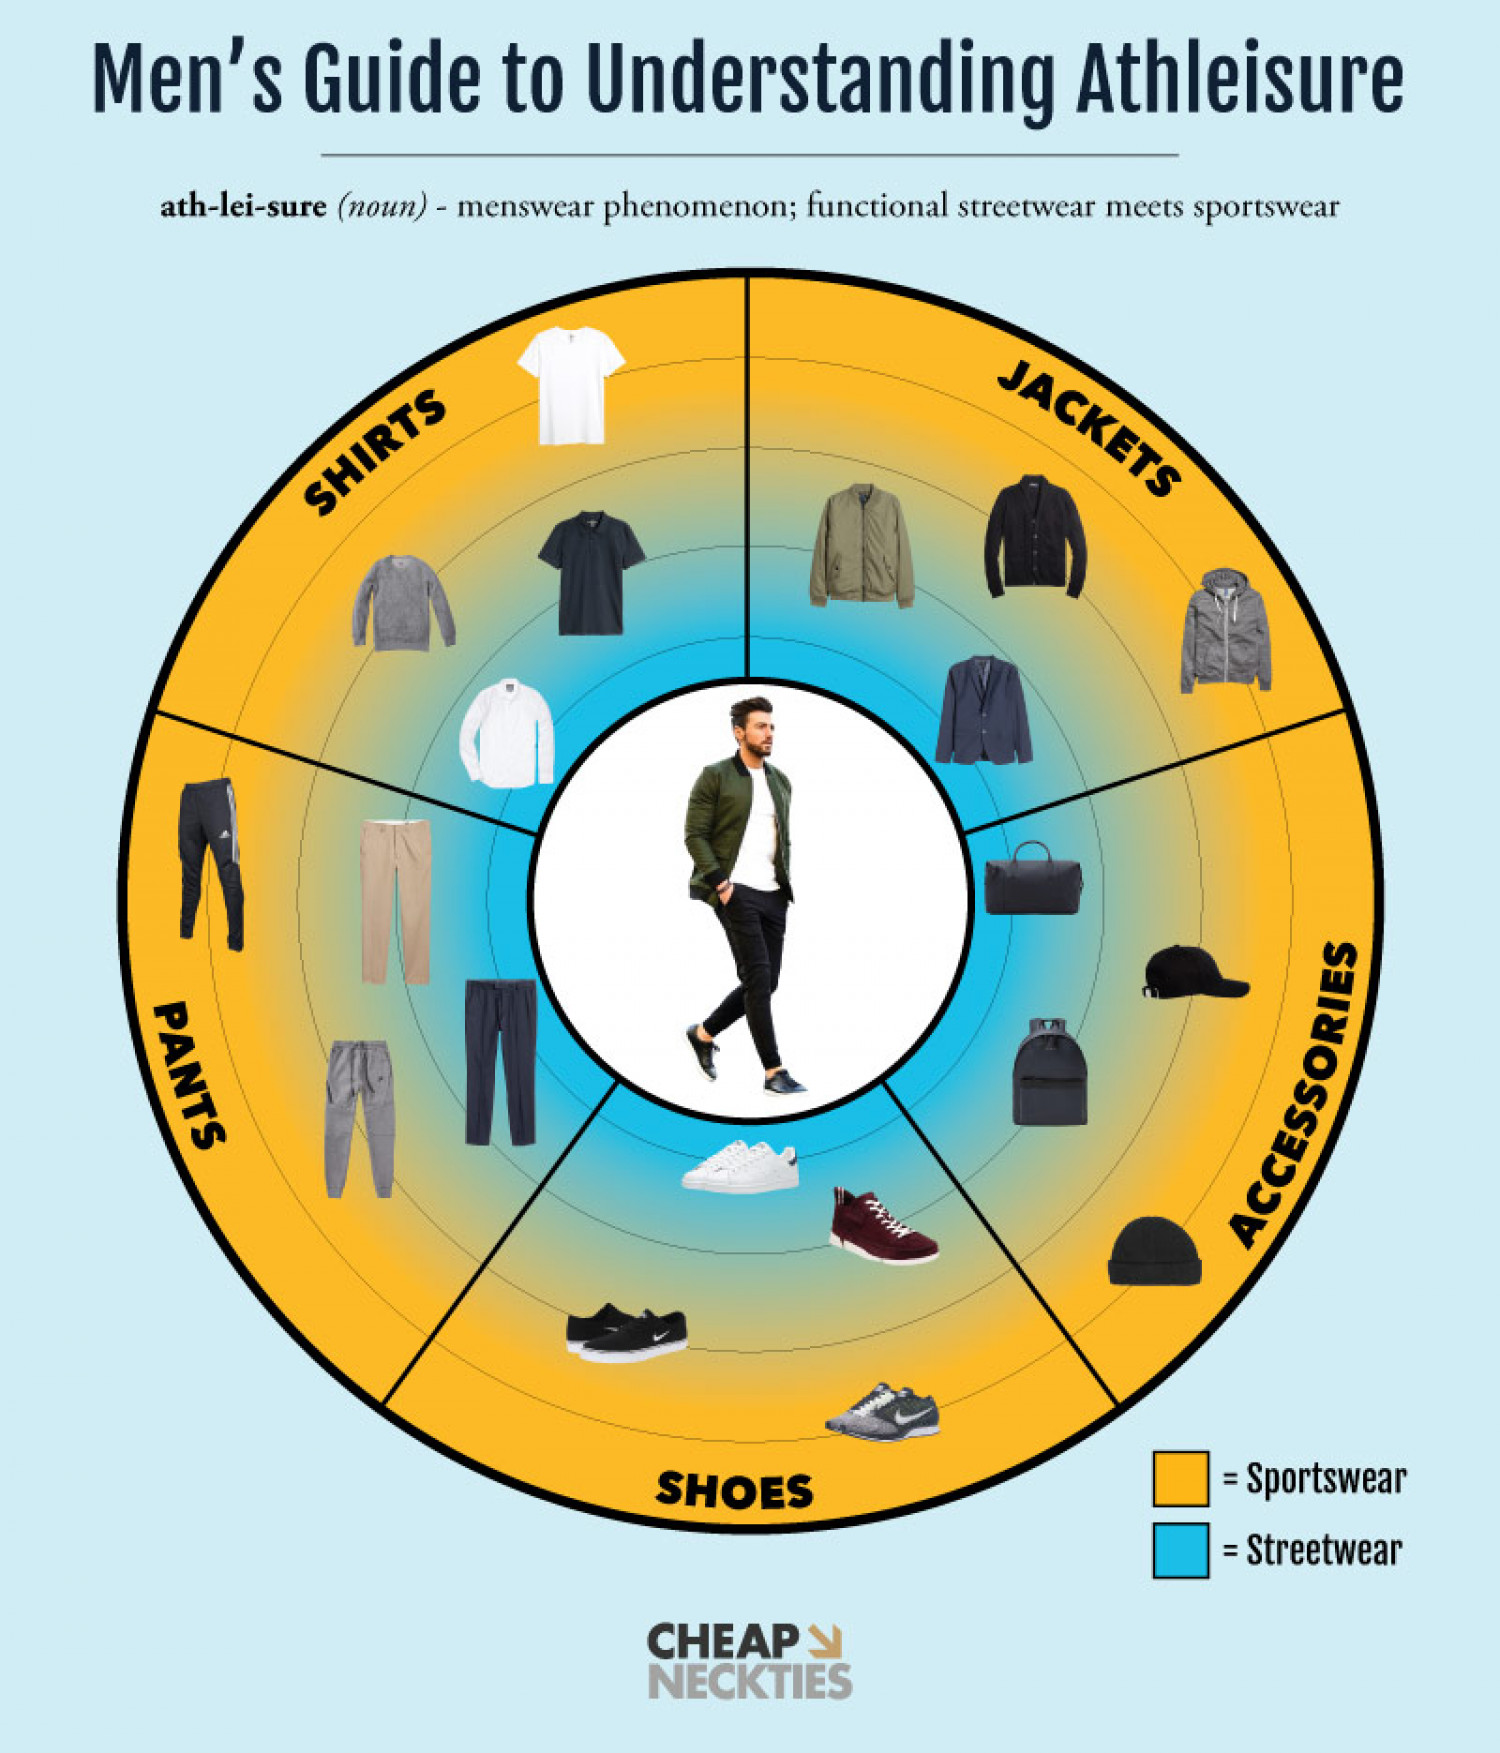 Guide to Athleisure in Menswear Infographic